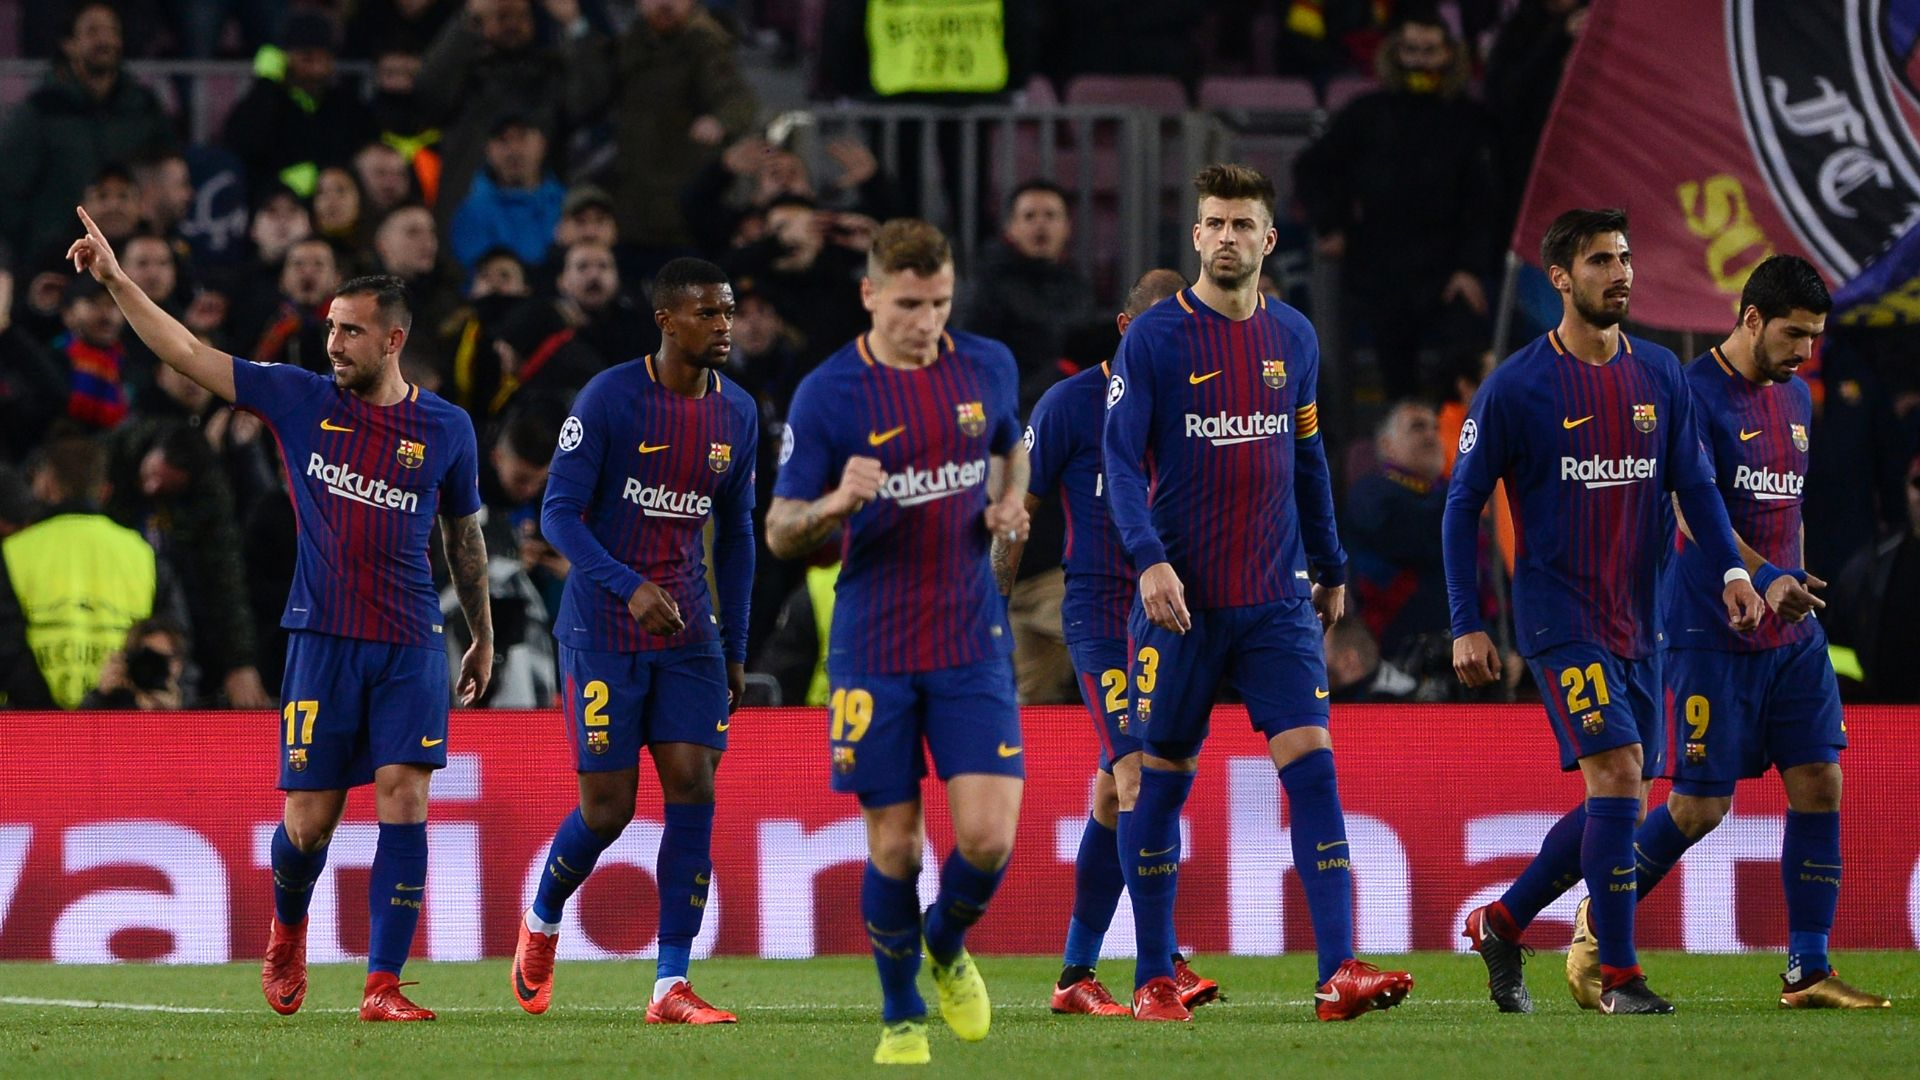 Denis Suarez impresses in win vs. Sporting